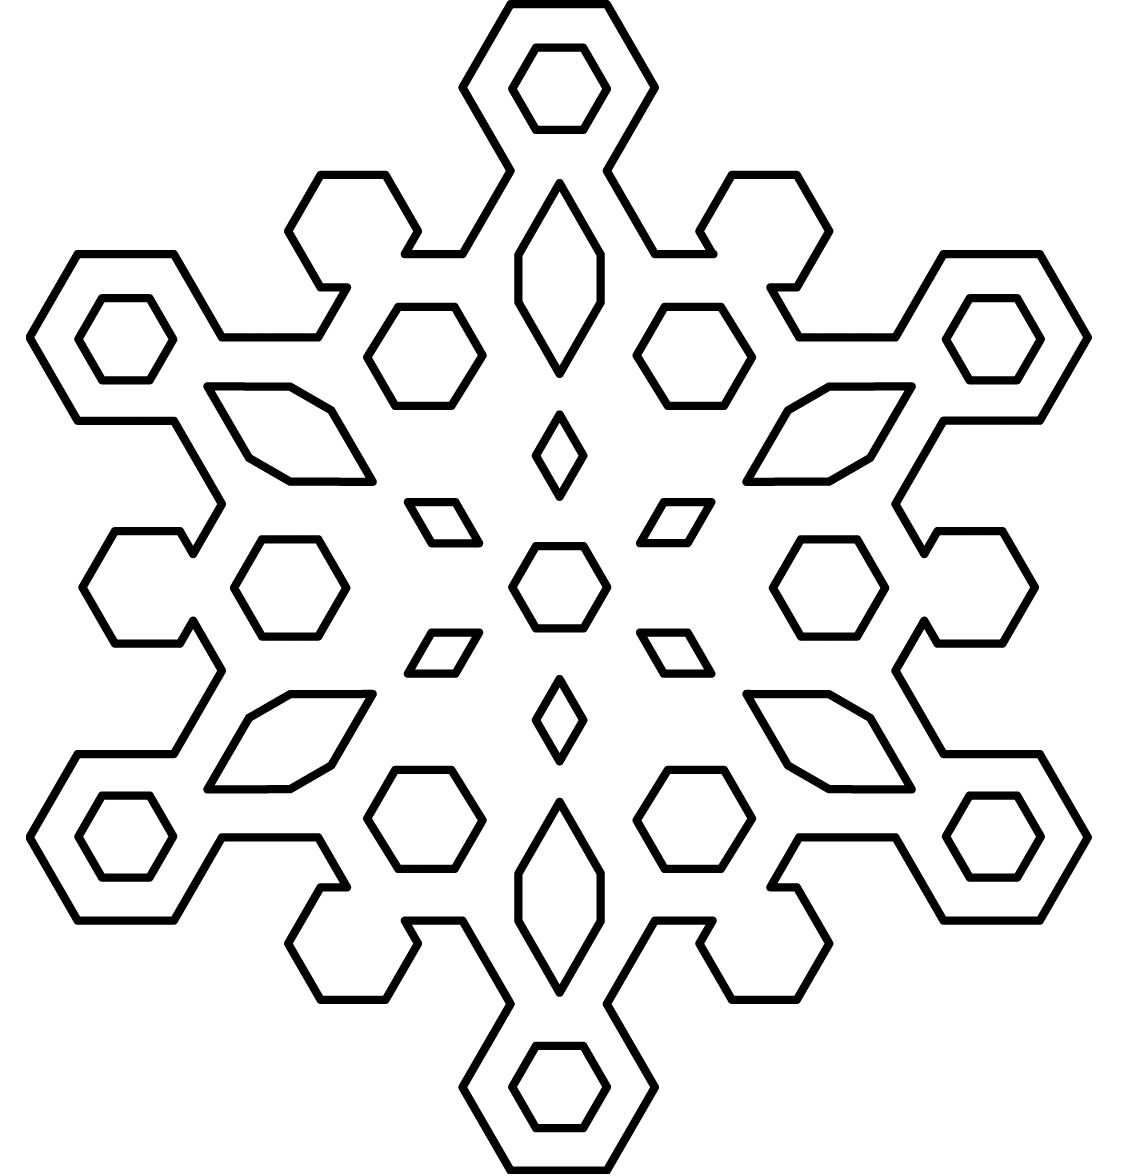 Free Printable Snowflake Coloring Pages For Kids - Free Snowflake Printable Coloring Pages